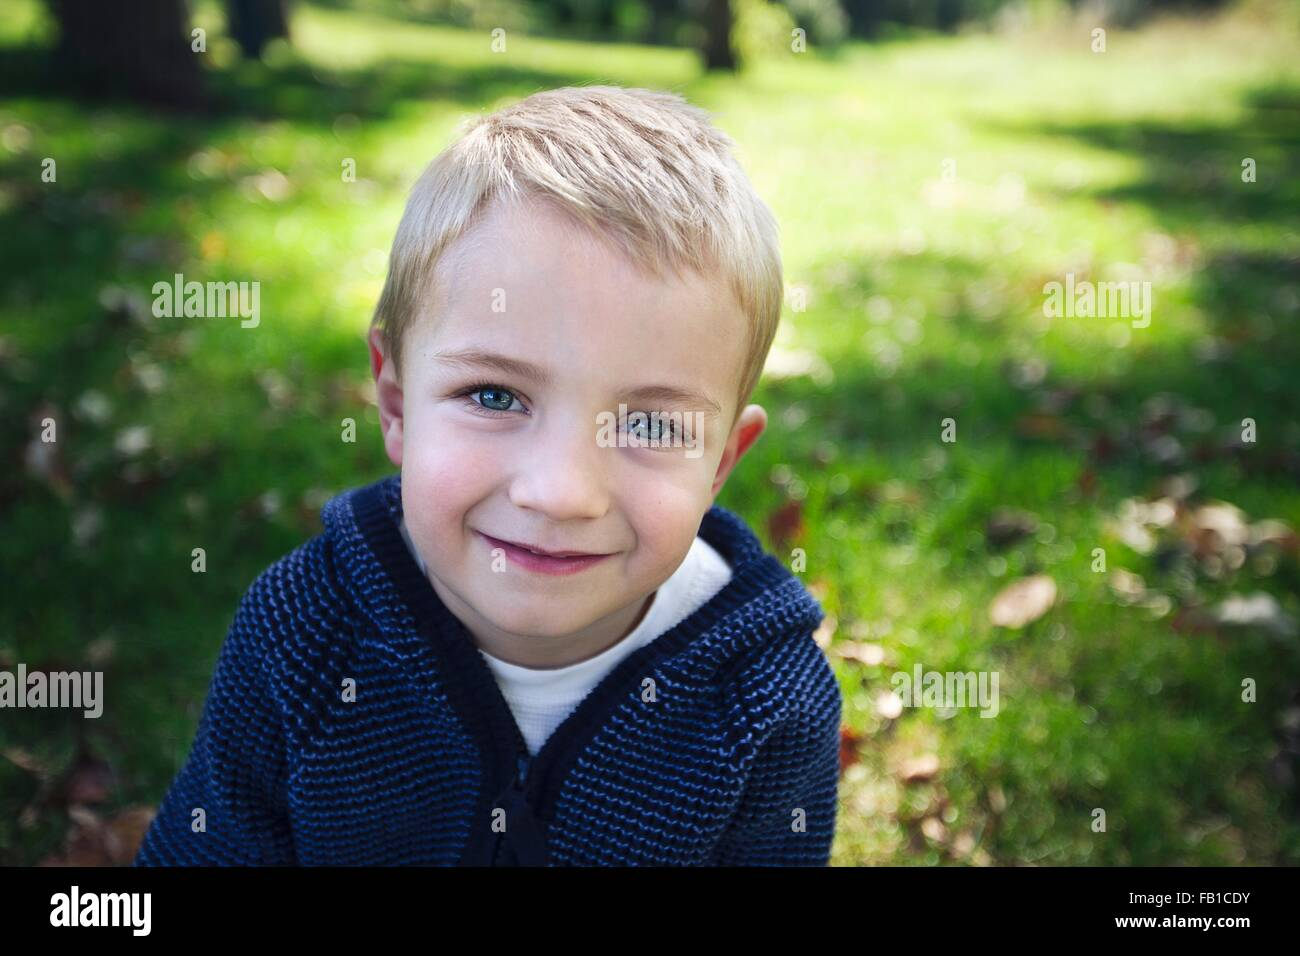 Portrait of blonde boy looking at camera smiling - Stock Image